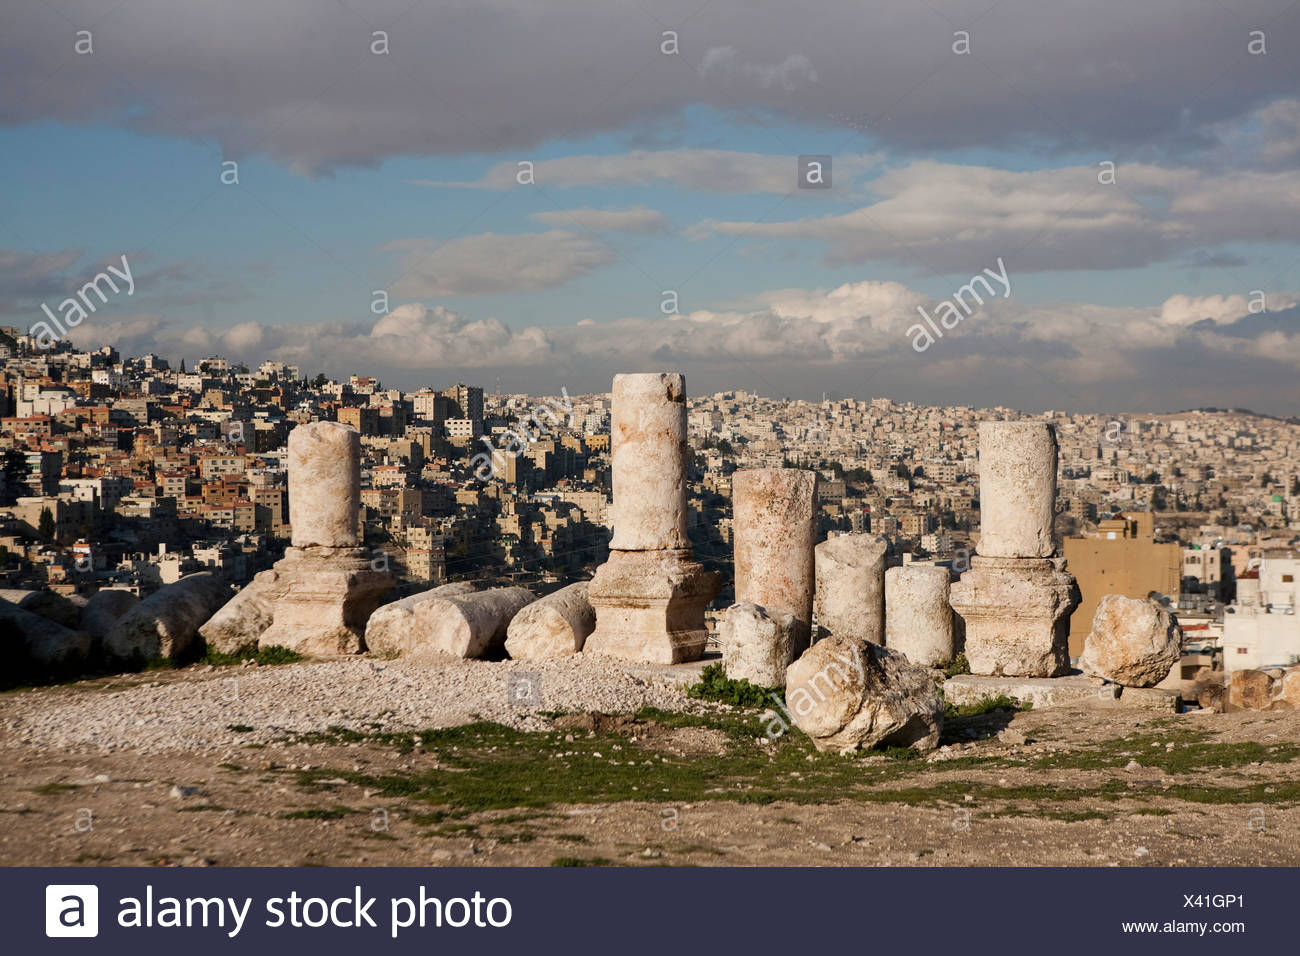 The ruins of the ancient Citadel, or Jebel al-Qal'a. Stock Photo